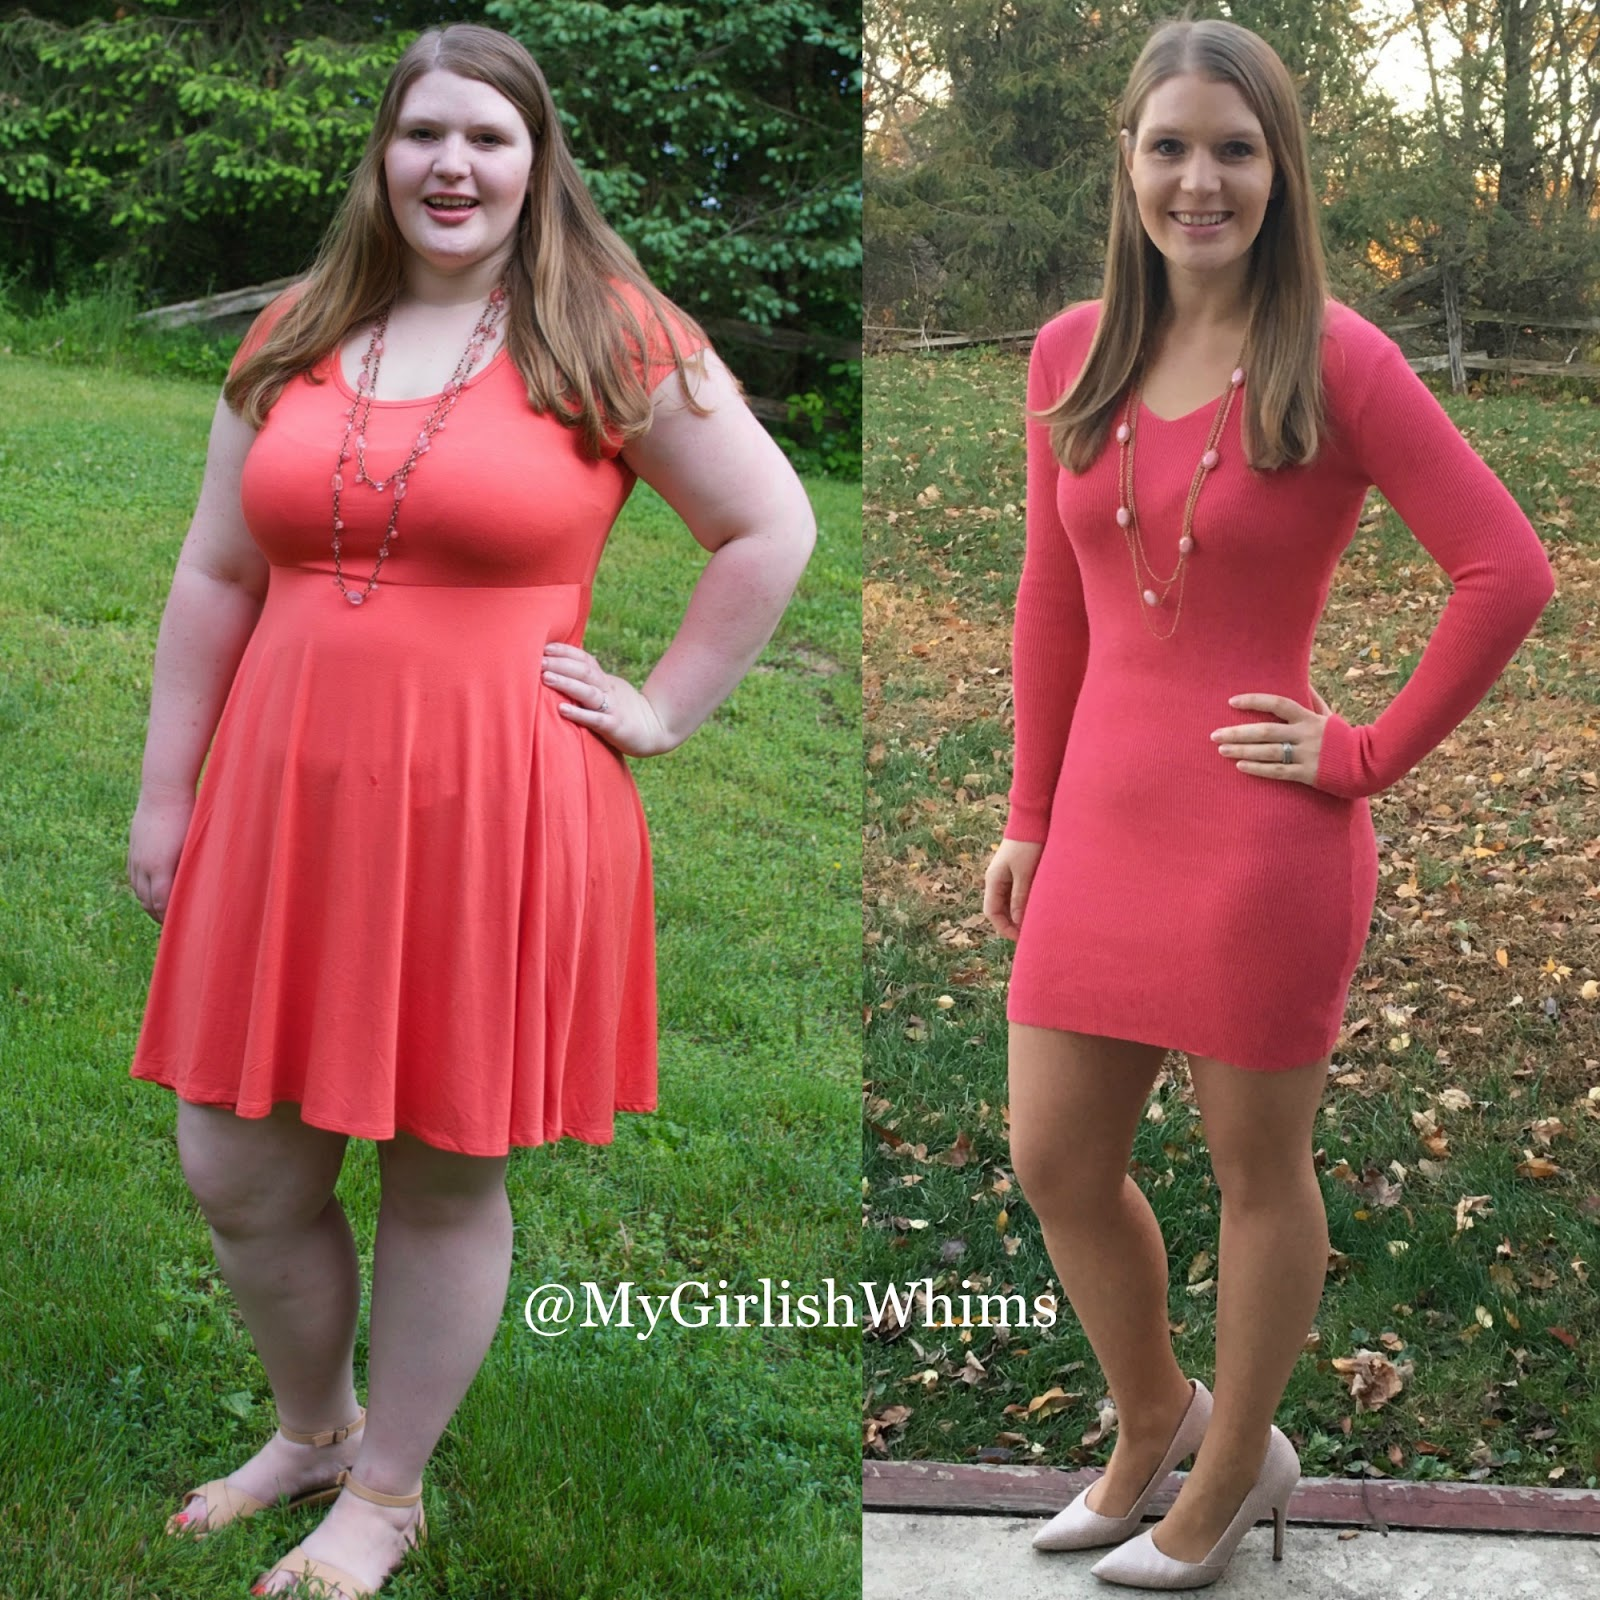 My Weight Loss Story - My Girlish Whims